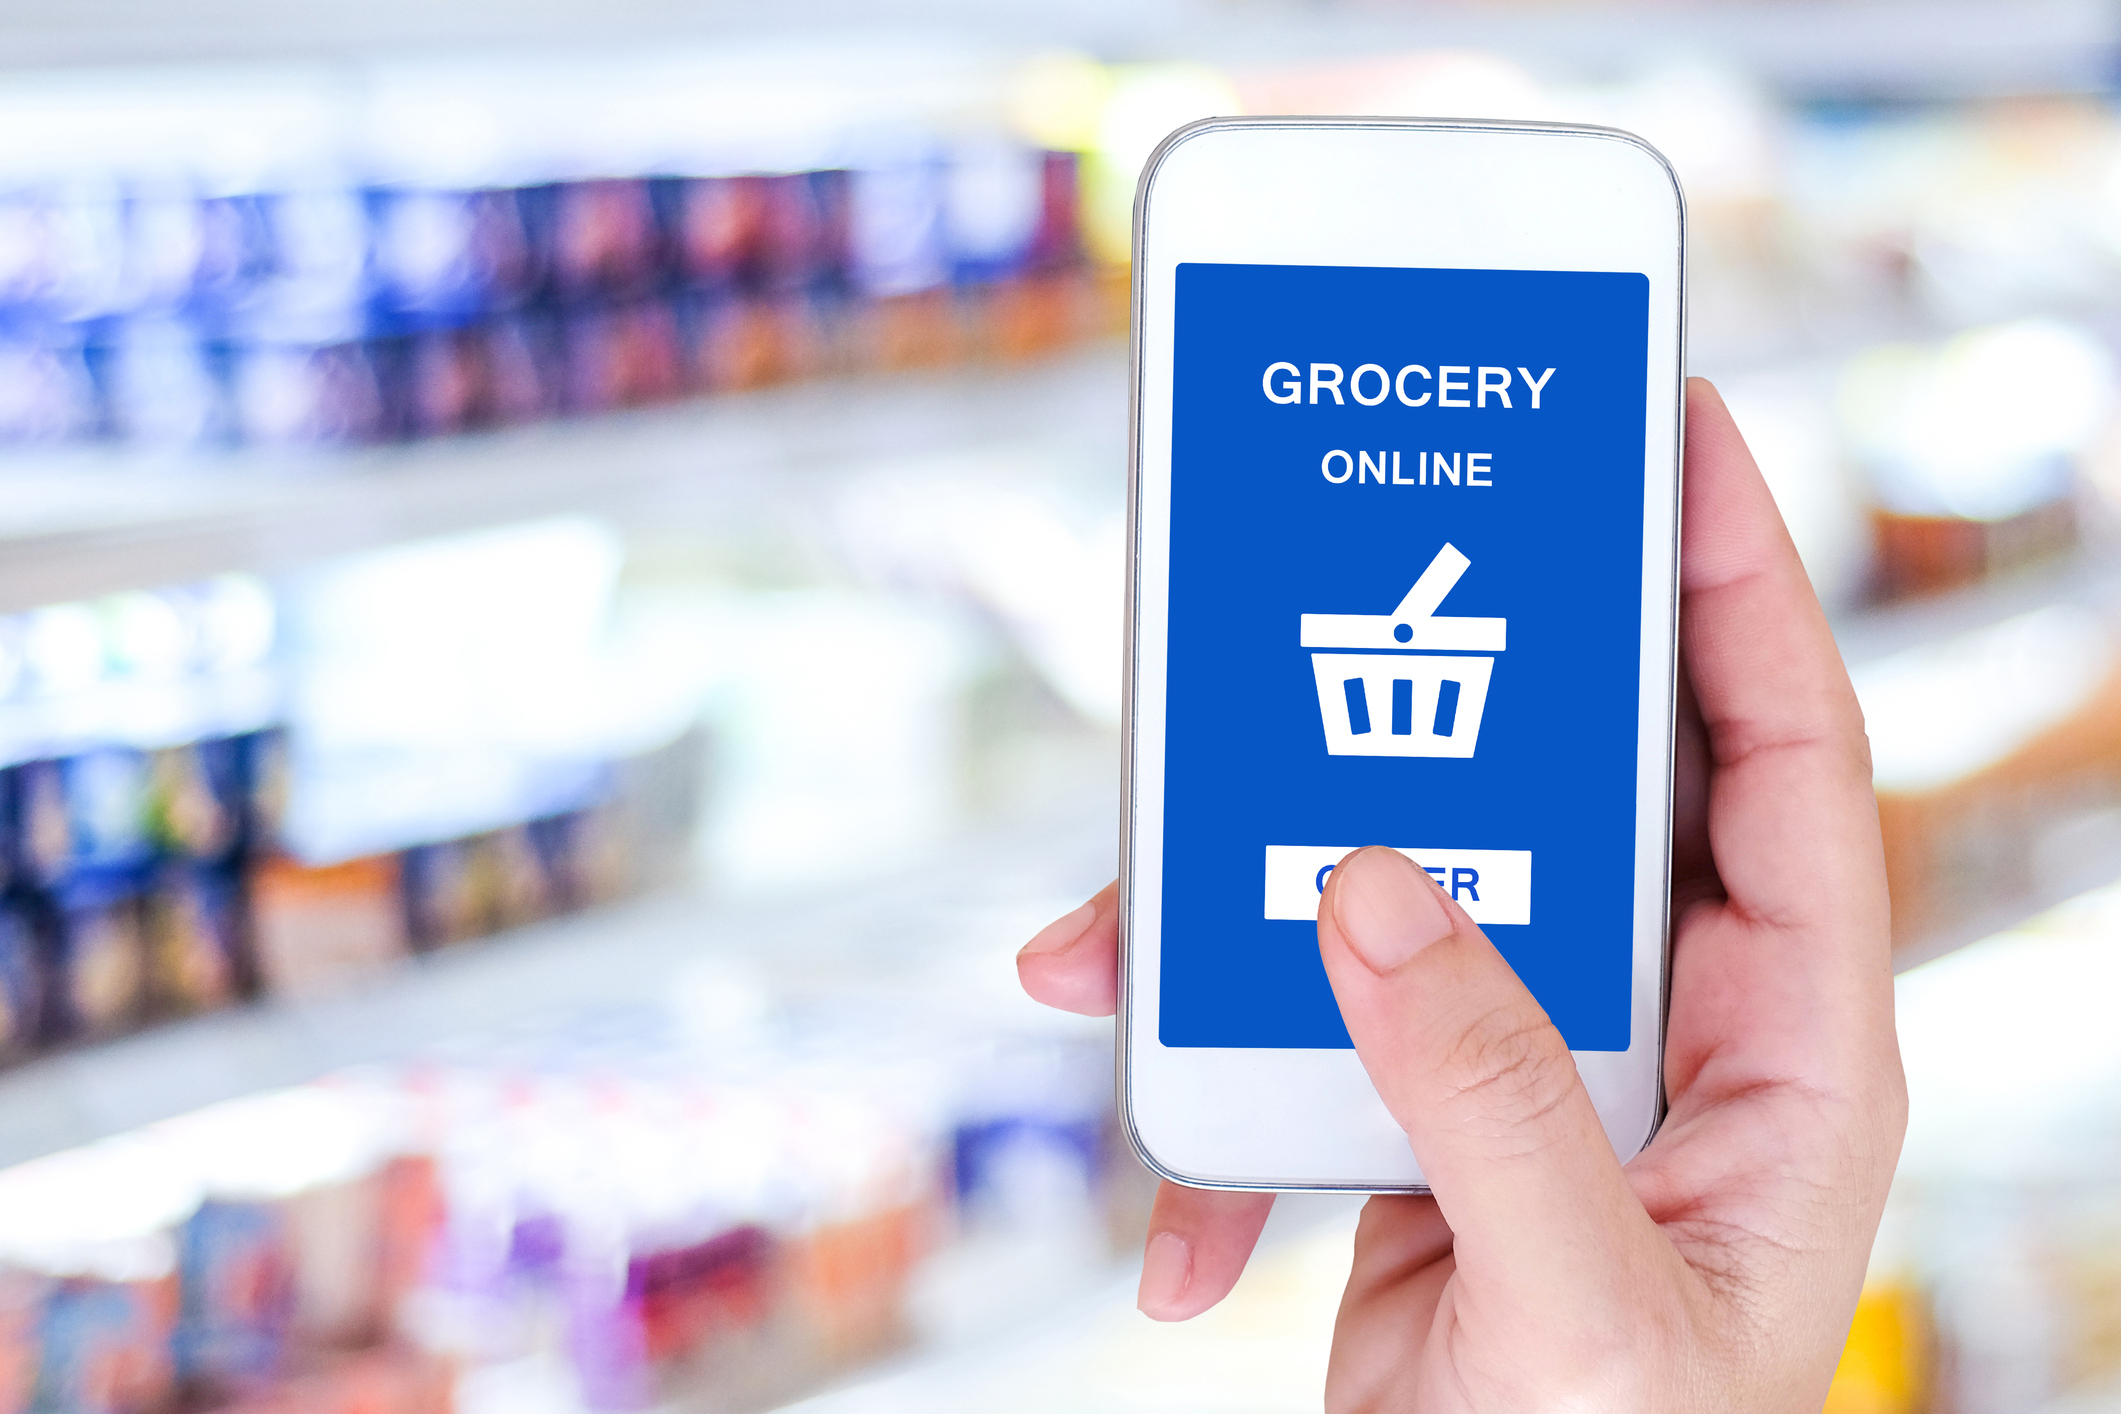 How Online Grocery Has Impacted Basket Size and Frequency Among Shoppers